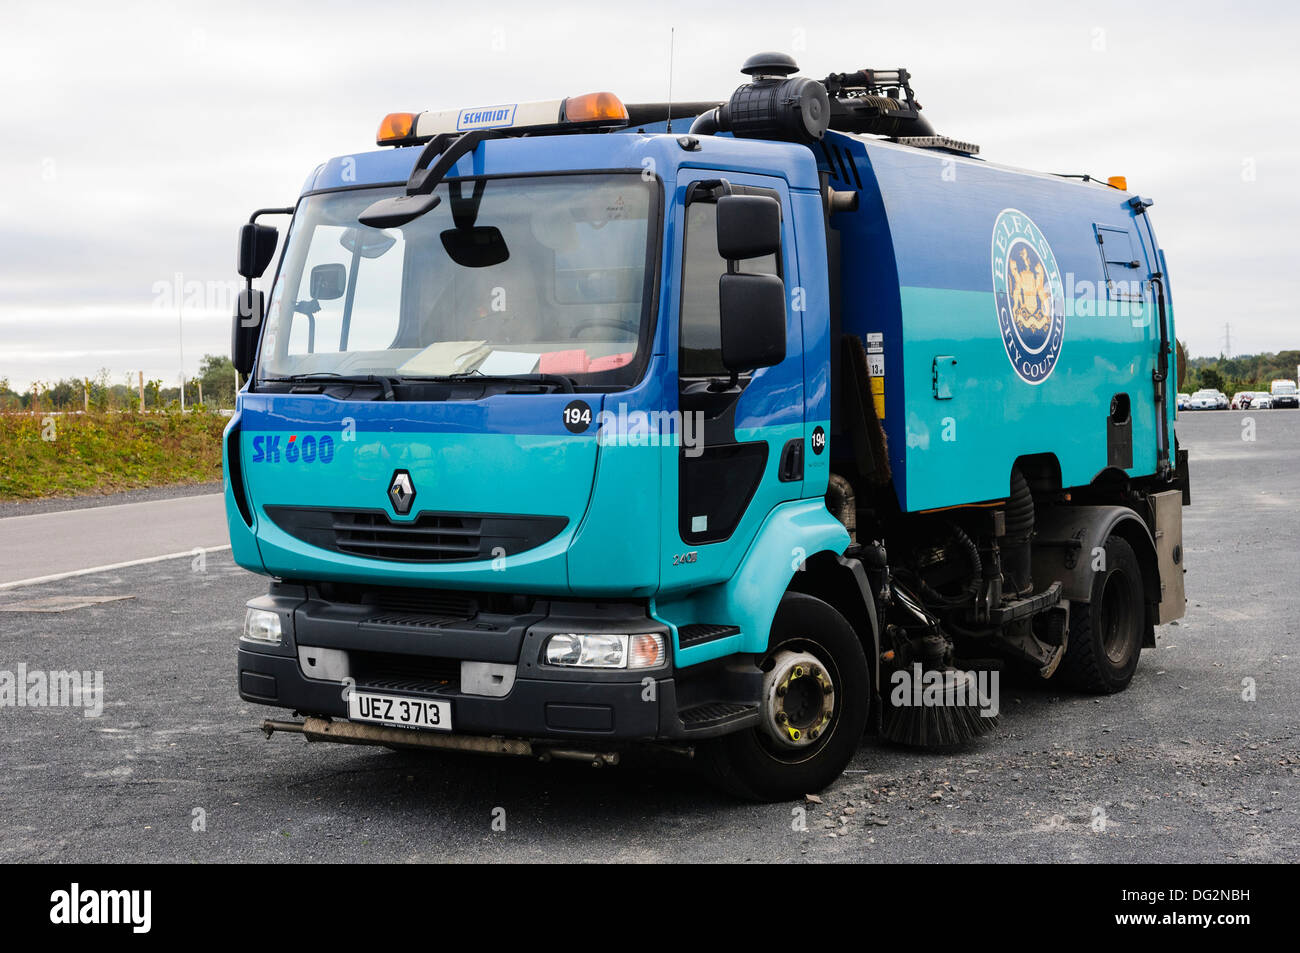 Schmidt SK600 road sweeper on a Renault 240 rigid body owned by Belfast City Council - Stock Image